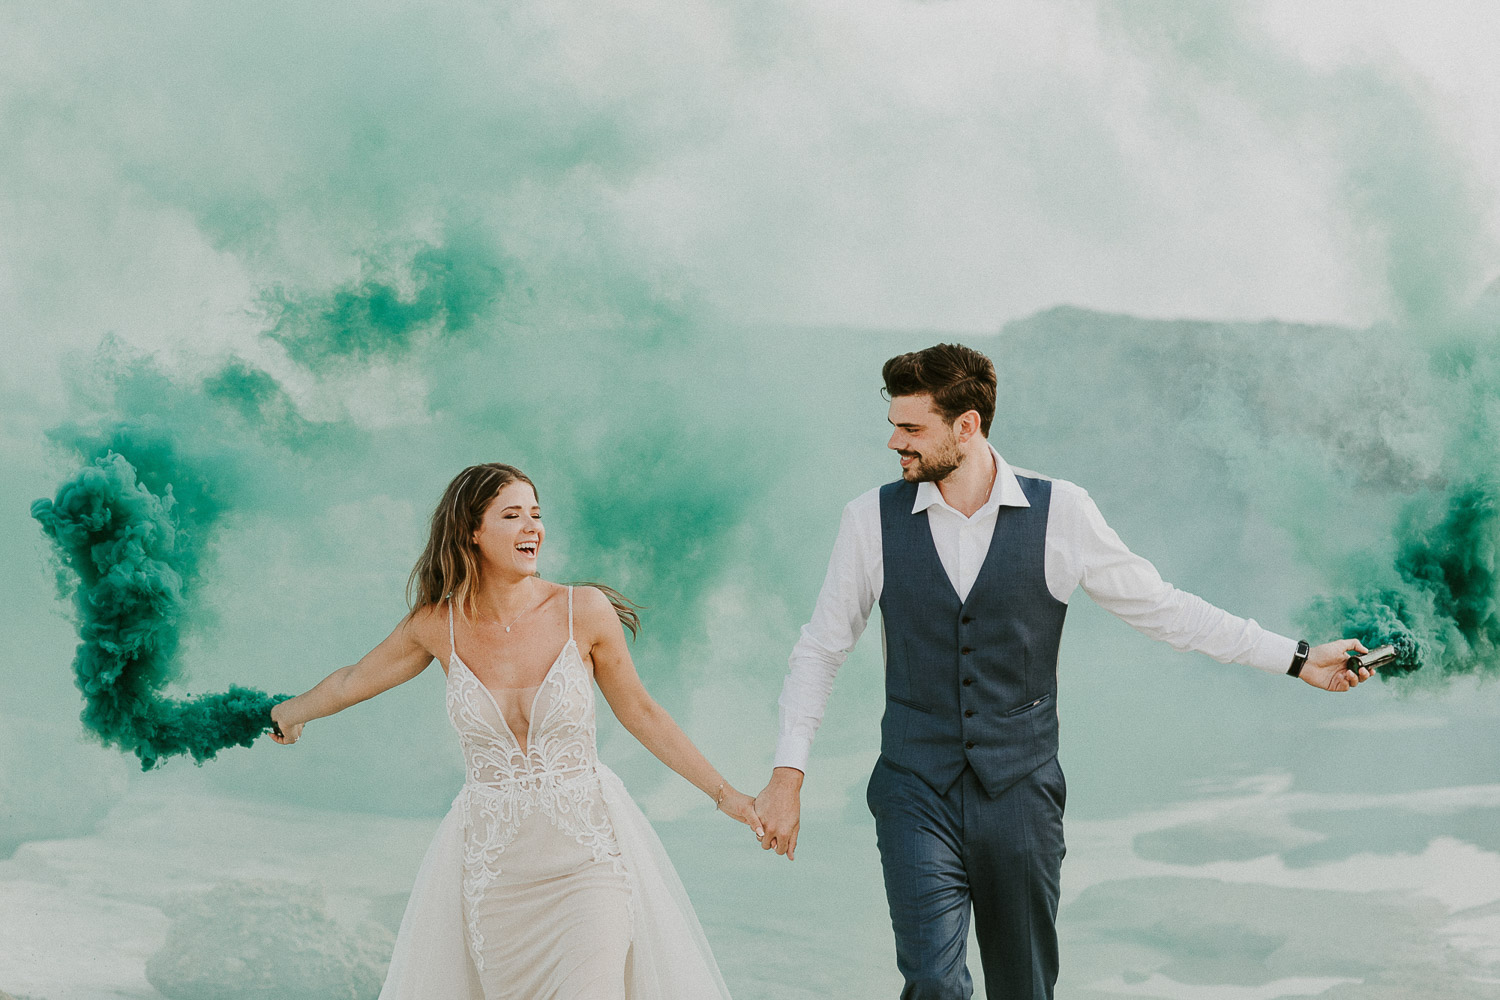 alternative-dreamy-wedding-smoke-bombs-cyprus77.jpg